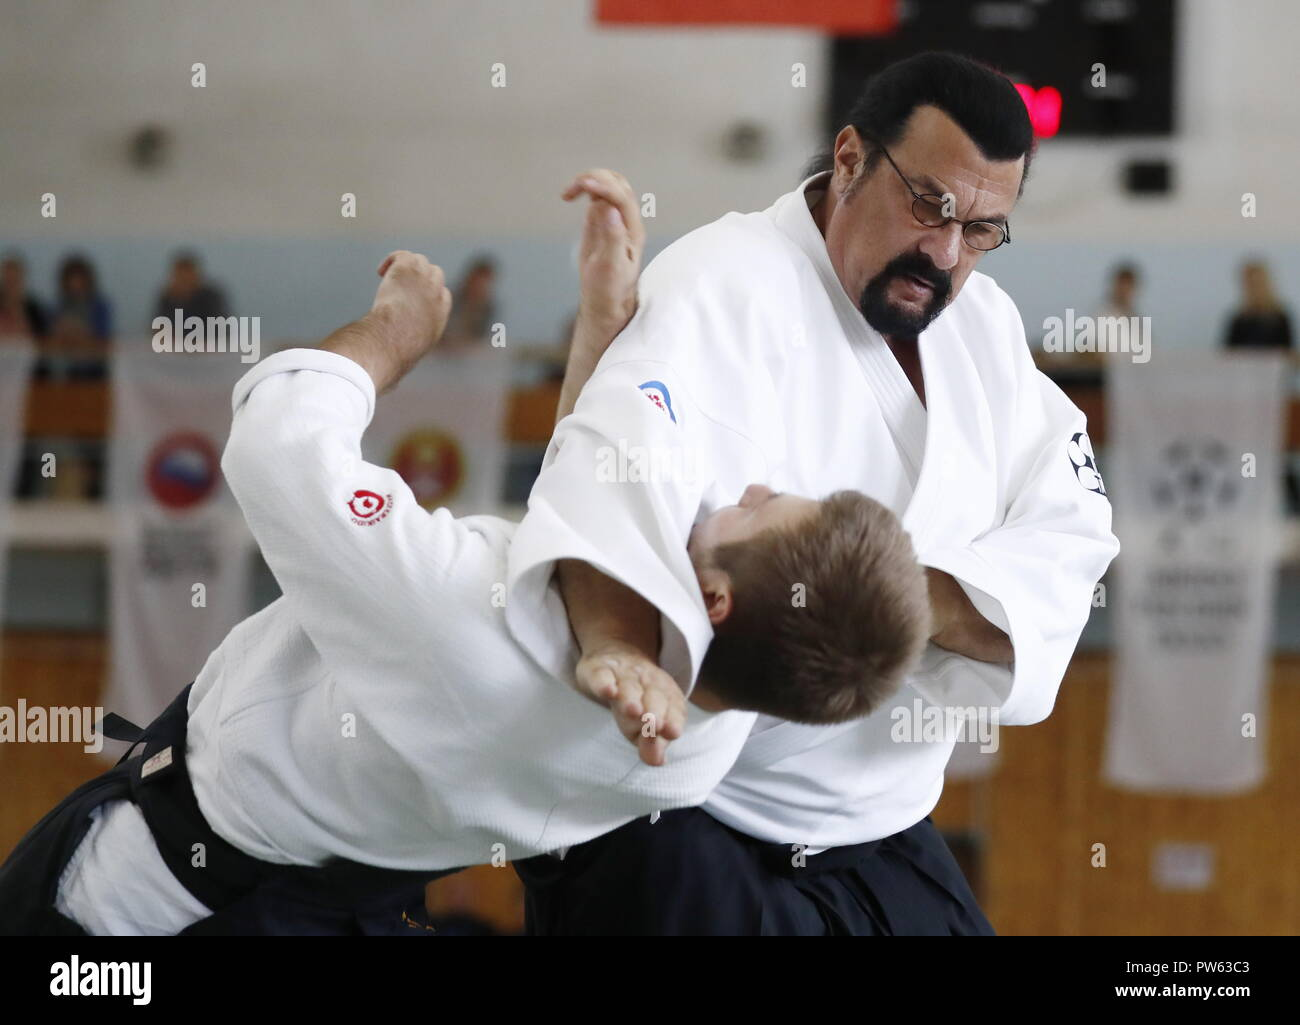 Moscow, Russia. 13th Oct, 2018. MOSCOW, RUSSIA - OCTOBER 13, 2018: US actor Steven  Seagal (R) gives an aikido masterclass at Fili Sports Complex; the event is  part of the 1st International